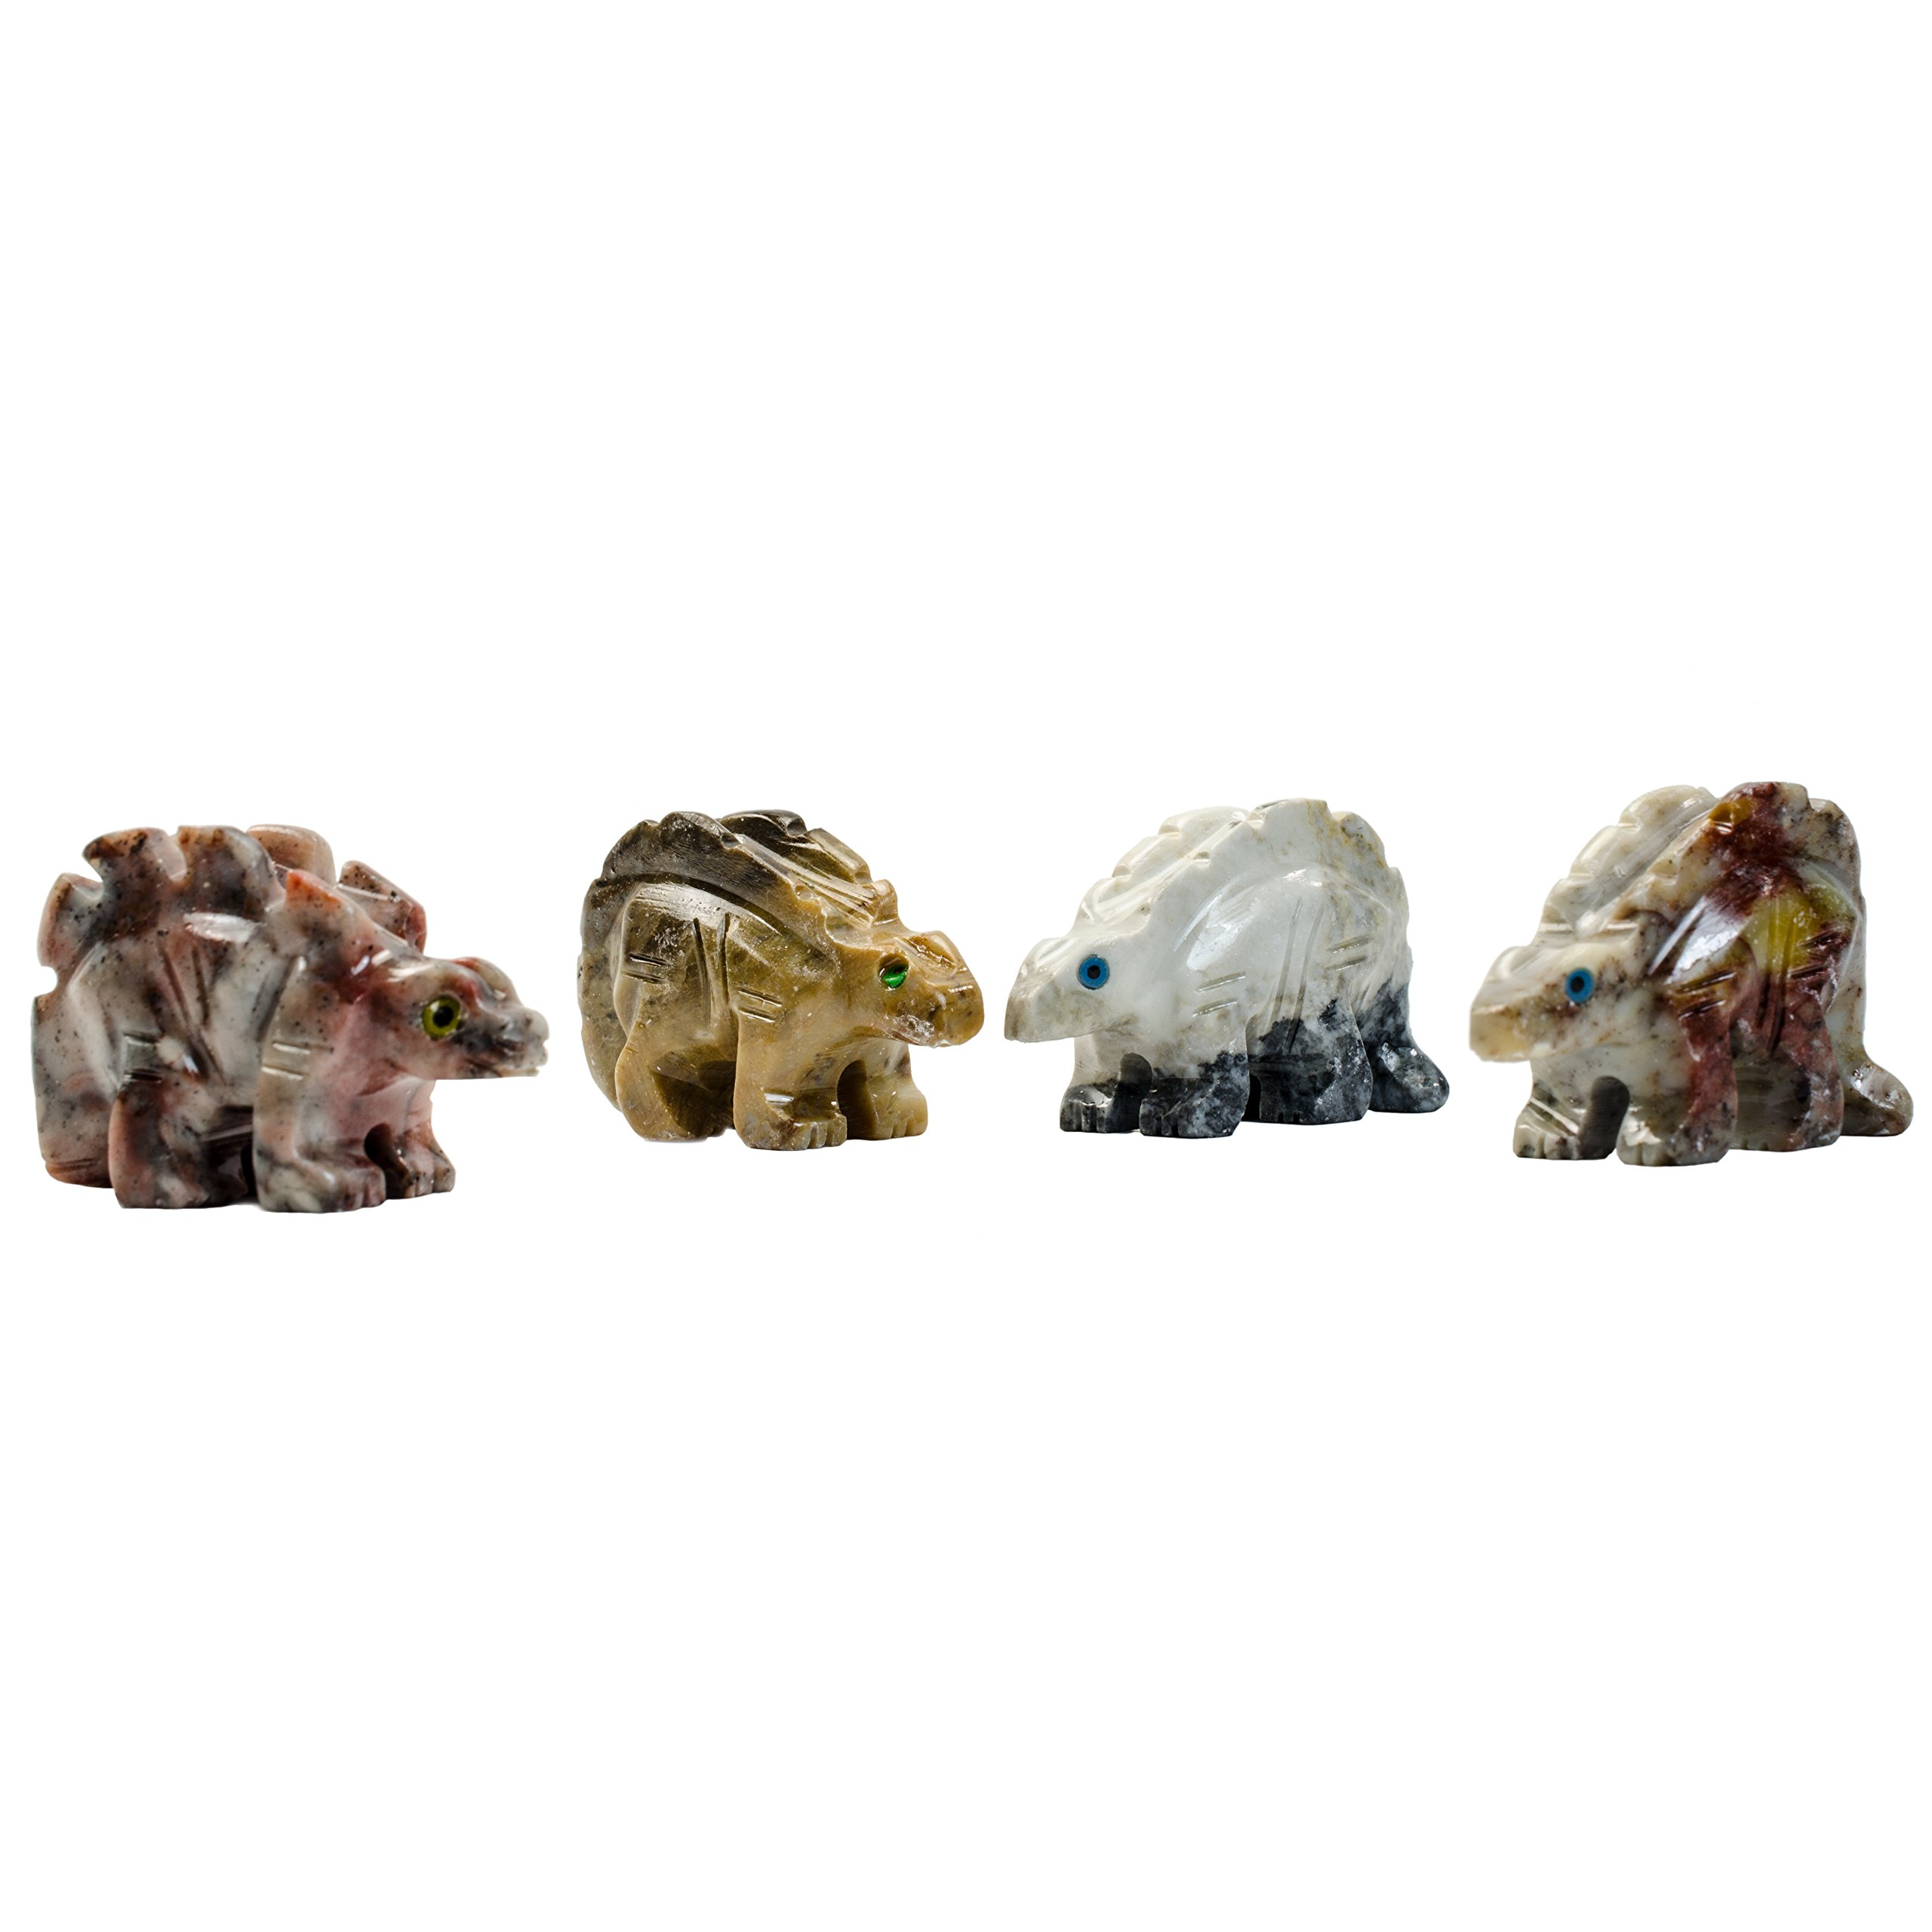 Digging Dolls : 10 pcs Artisan Stegosaurus Collectable Animal Figurine - Party Favors, Stocking Stuffers, Gifts, Collecting and More!